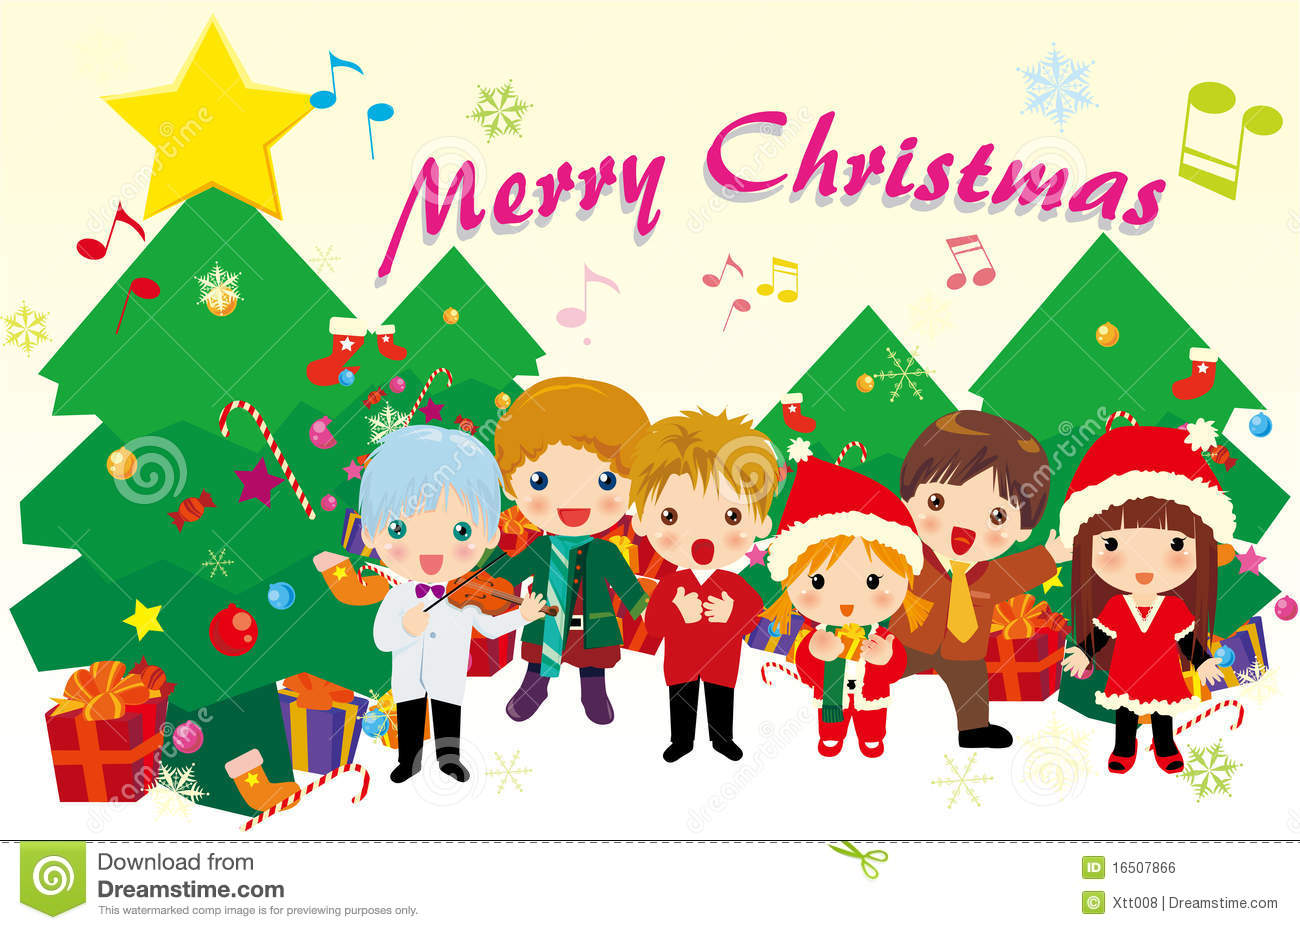 Christmas carols stock vector. Illustration of song, cute.